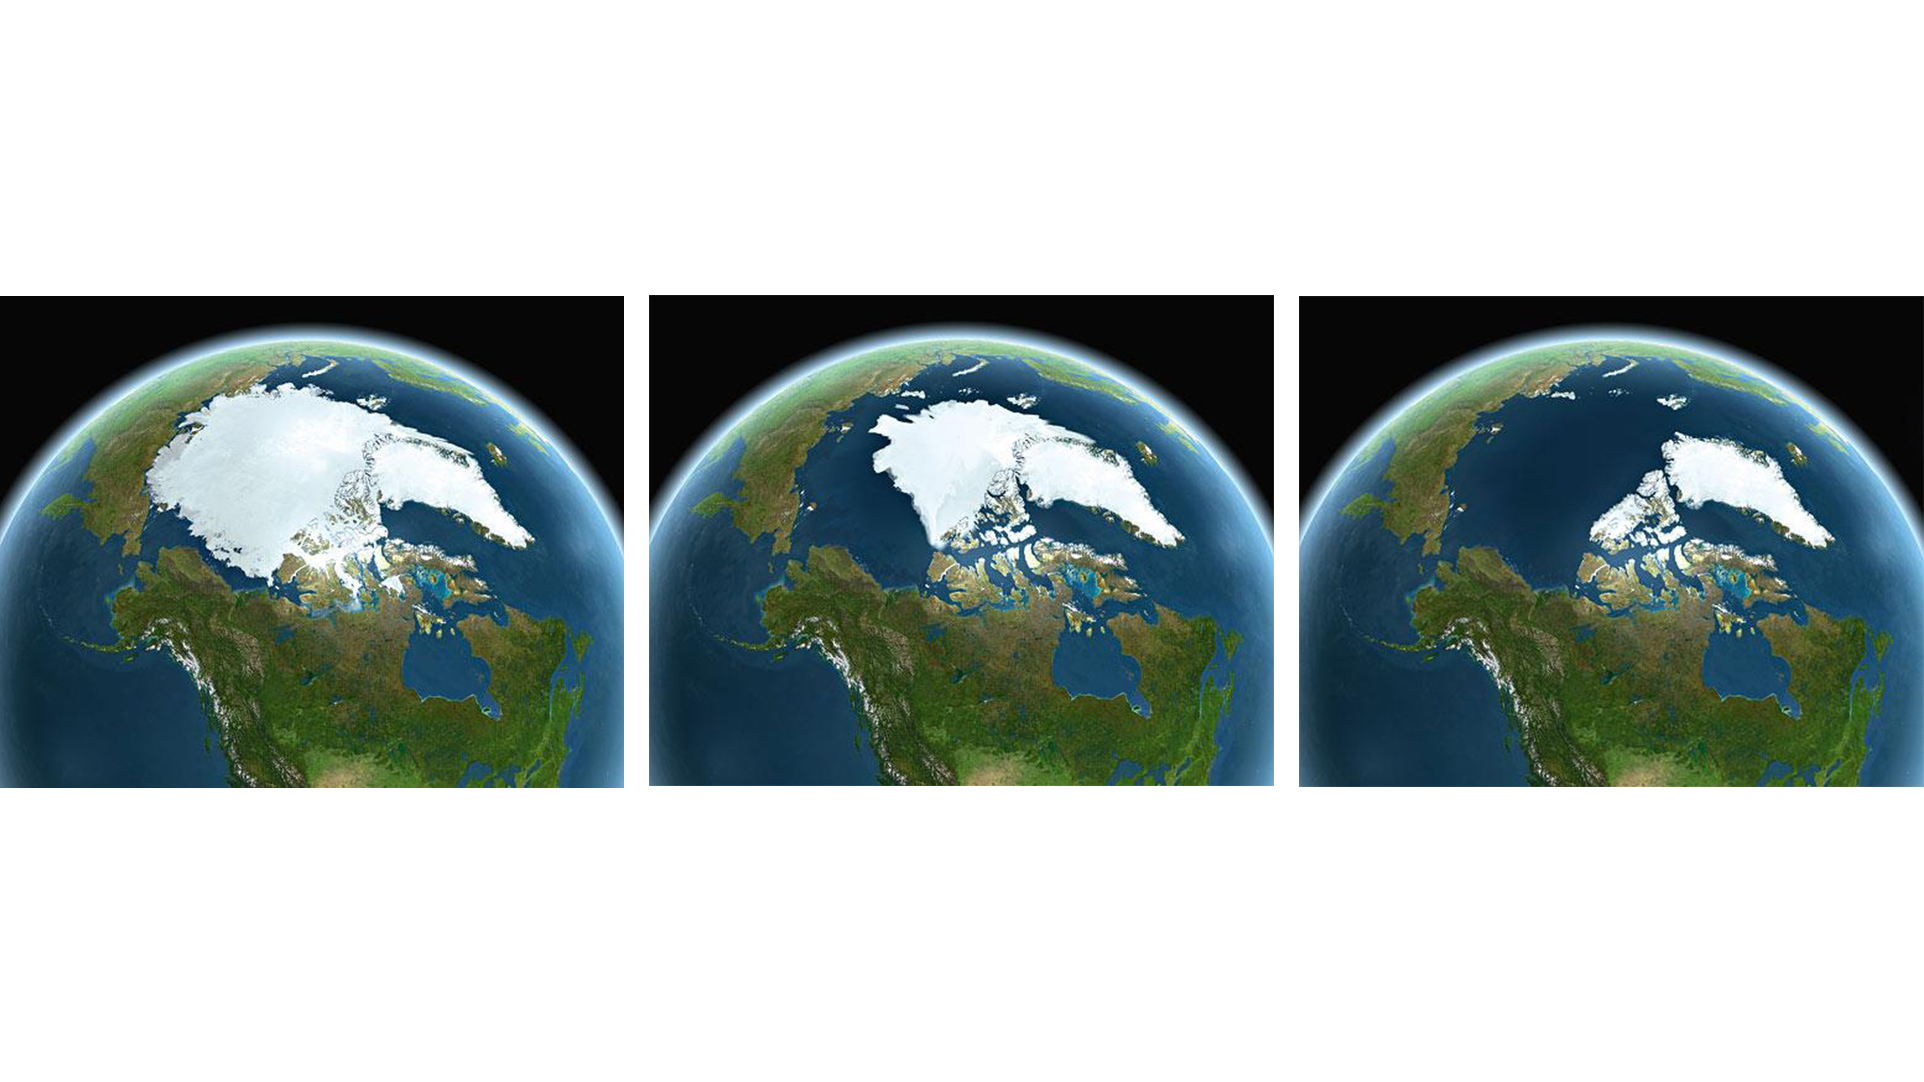 Earth with melting ice masses